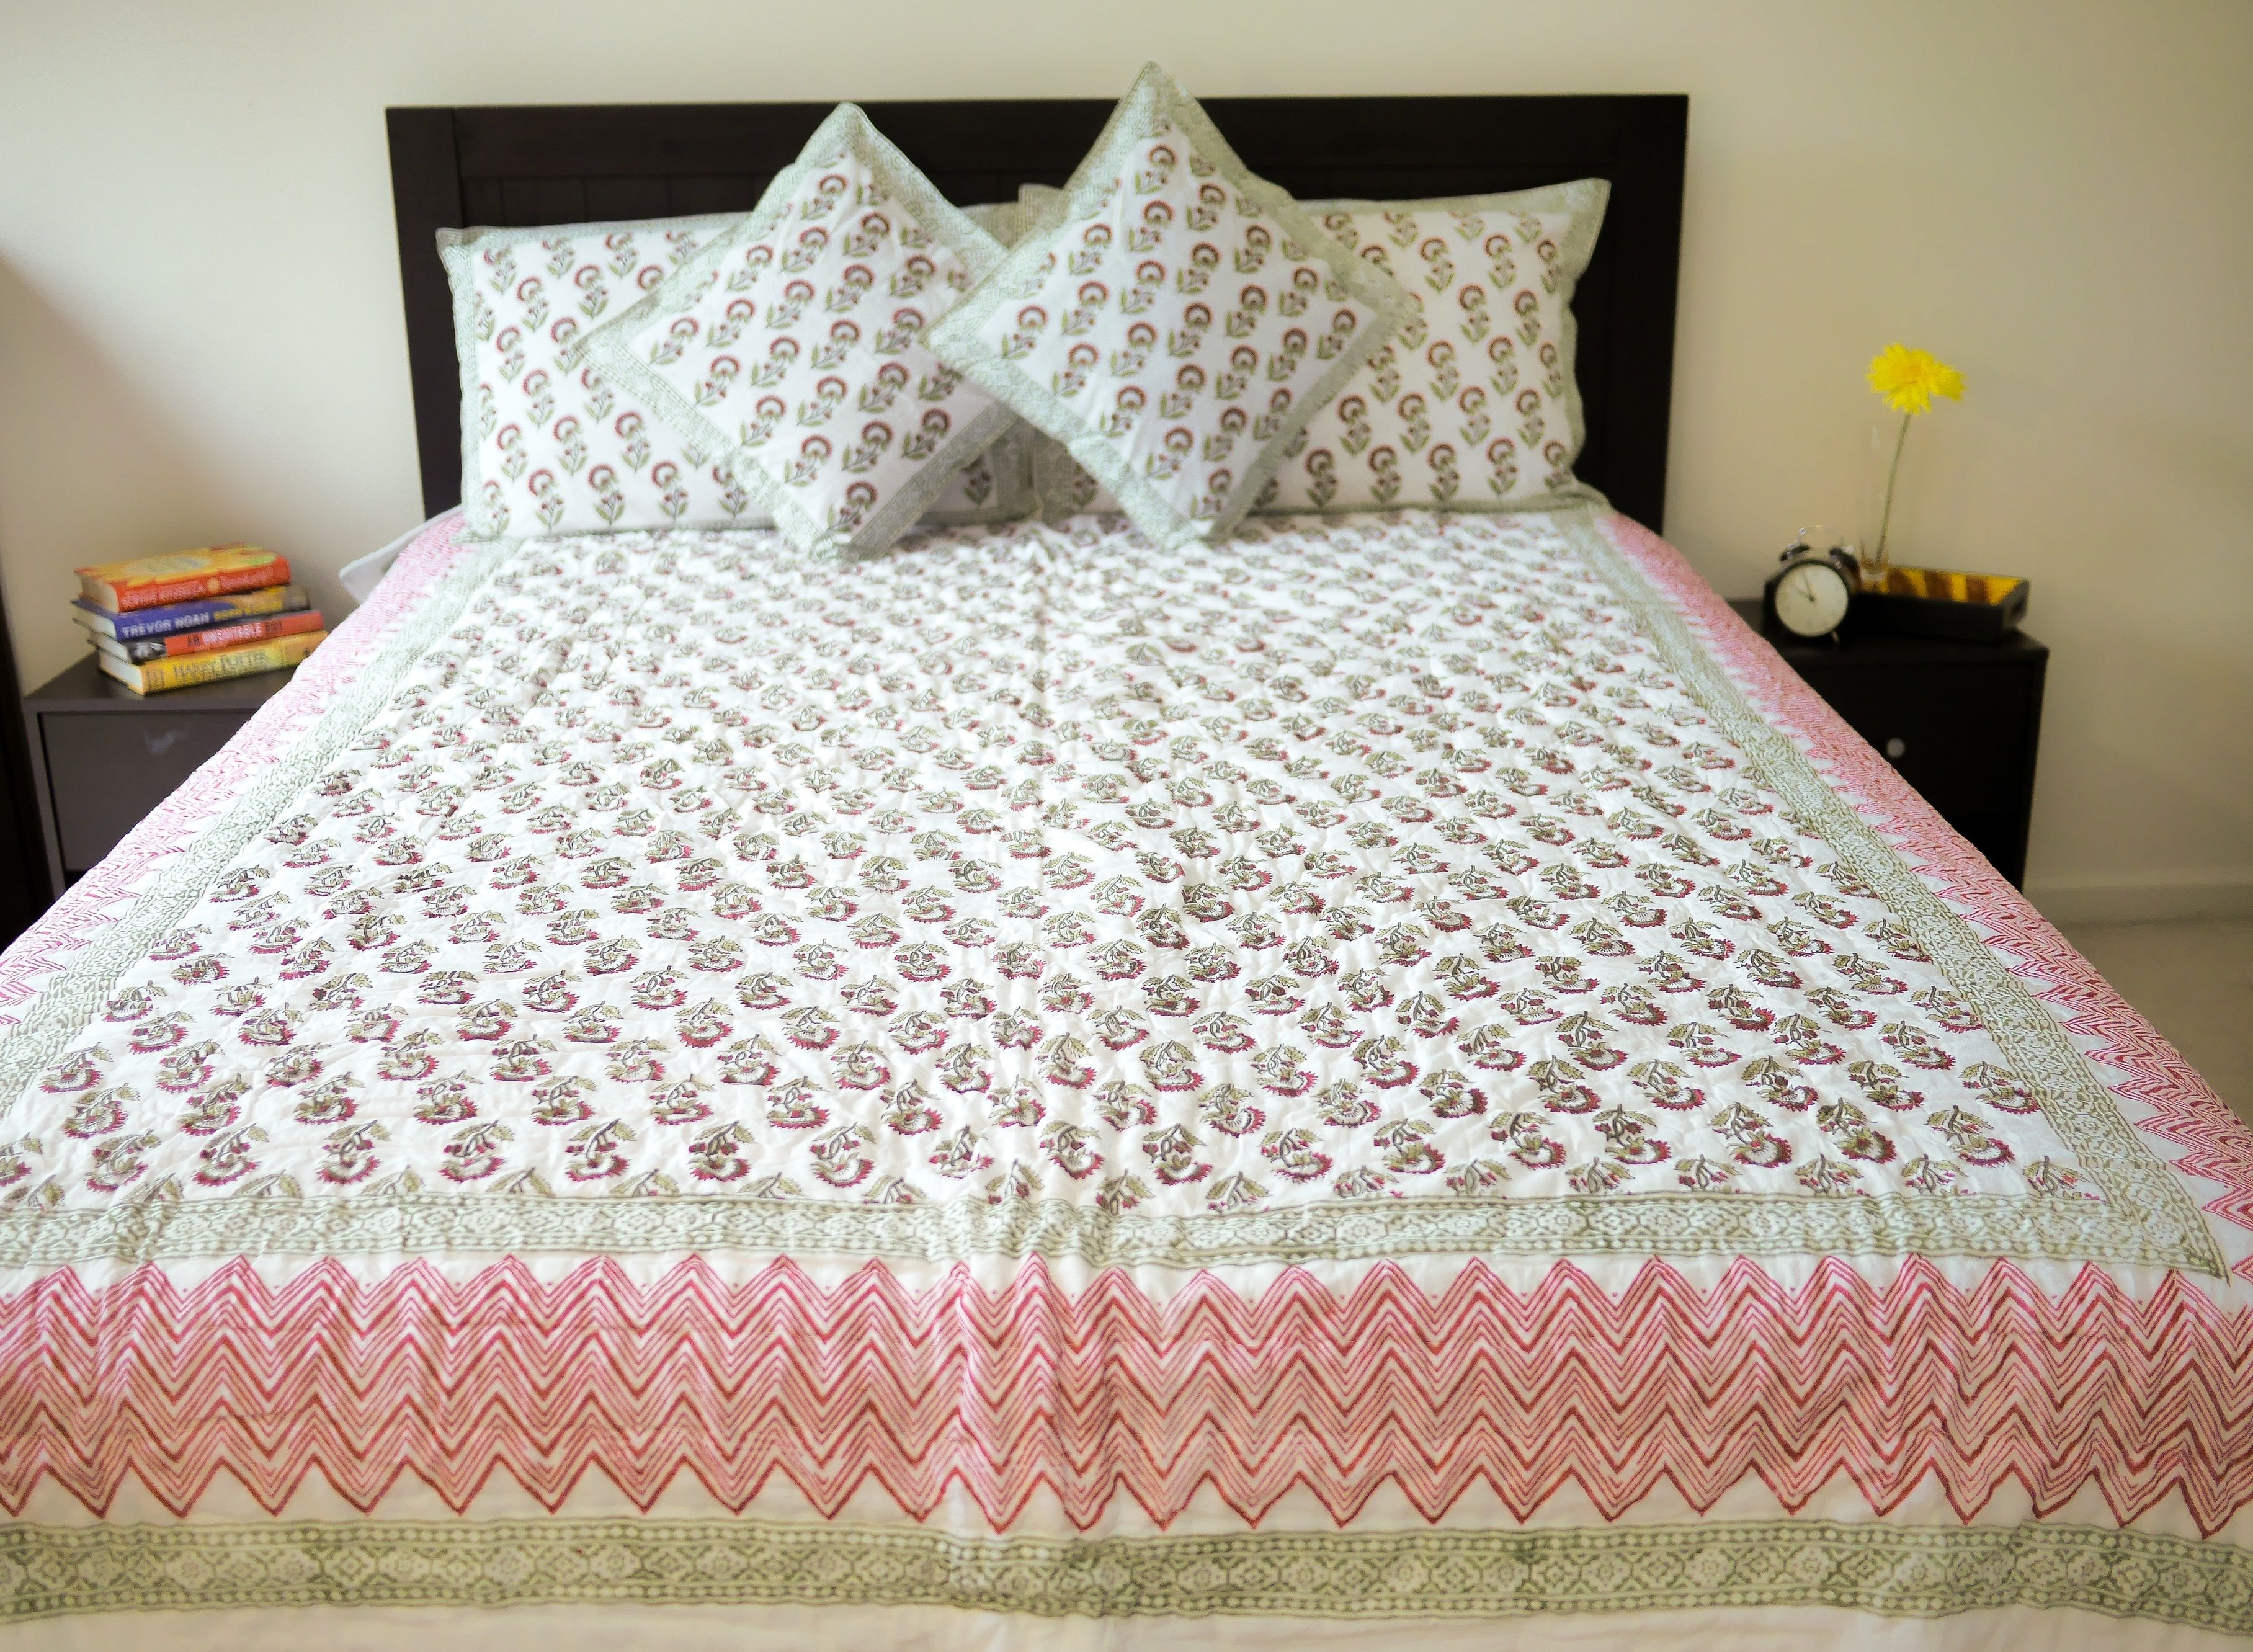 queen rs cheap oversized witching image gh bedspread quilt sells antique comforters cotton idea for bedspreads reputable dining size long king sets extra quilts